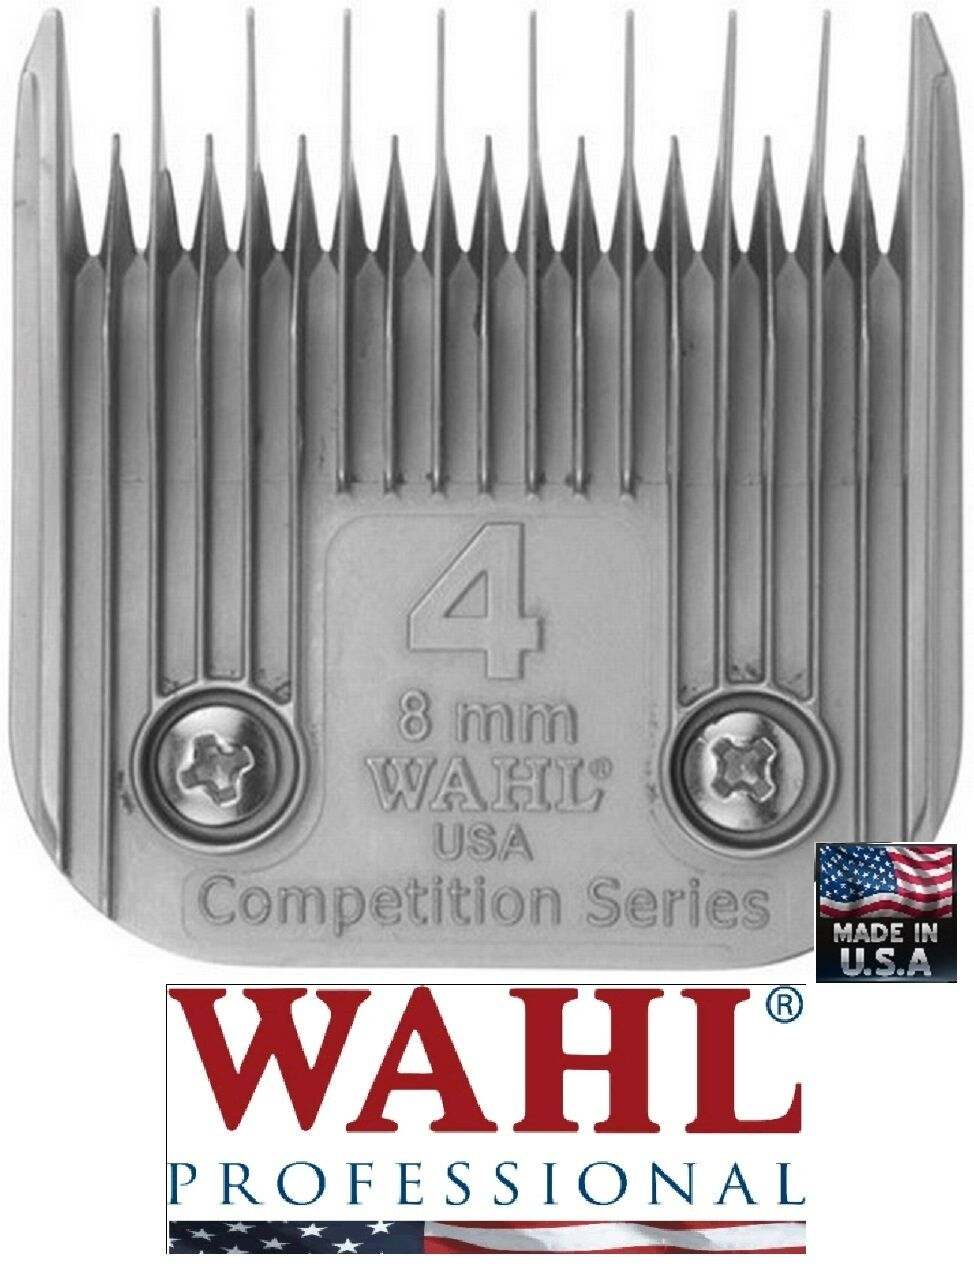 Wahl Competition Series 4 Skip 5 16 - 8mmFit Most Oster,Andis,A5 AG BG Clipper